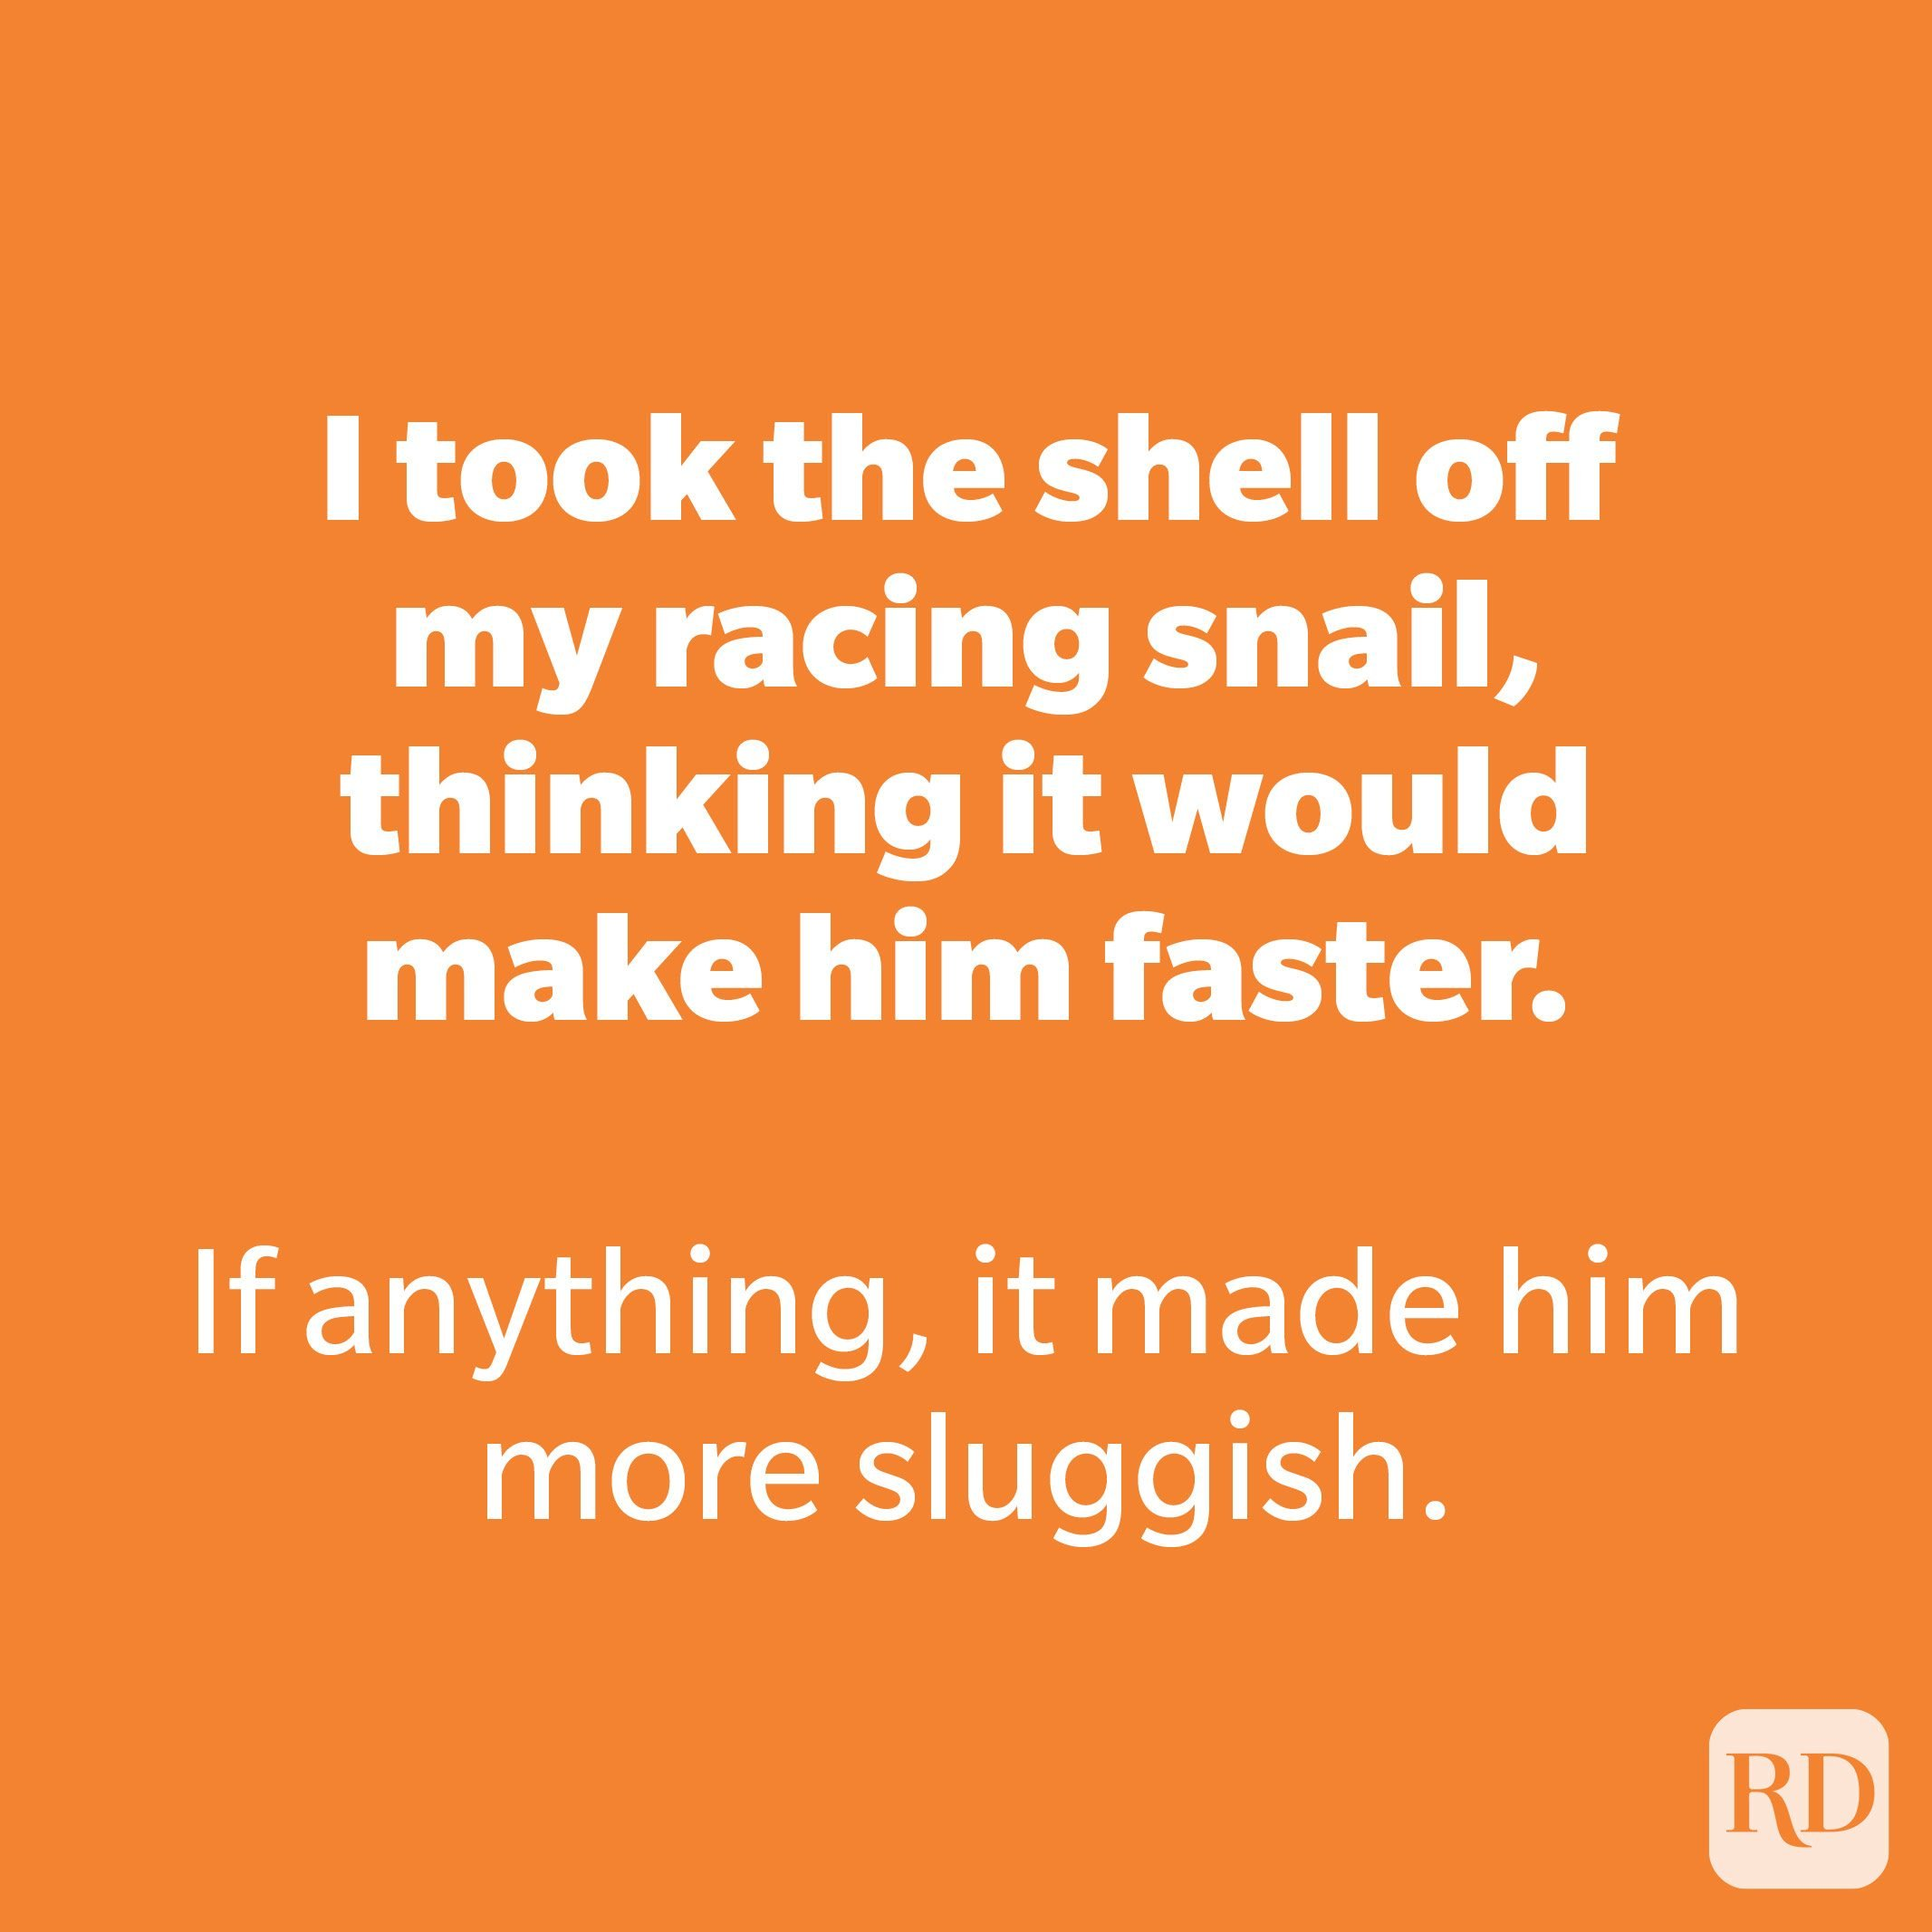 I took the shell off my racing snail, thinking it would make him faster.